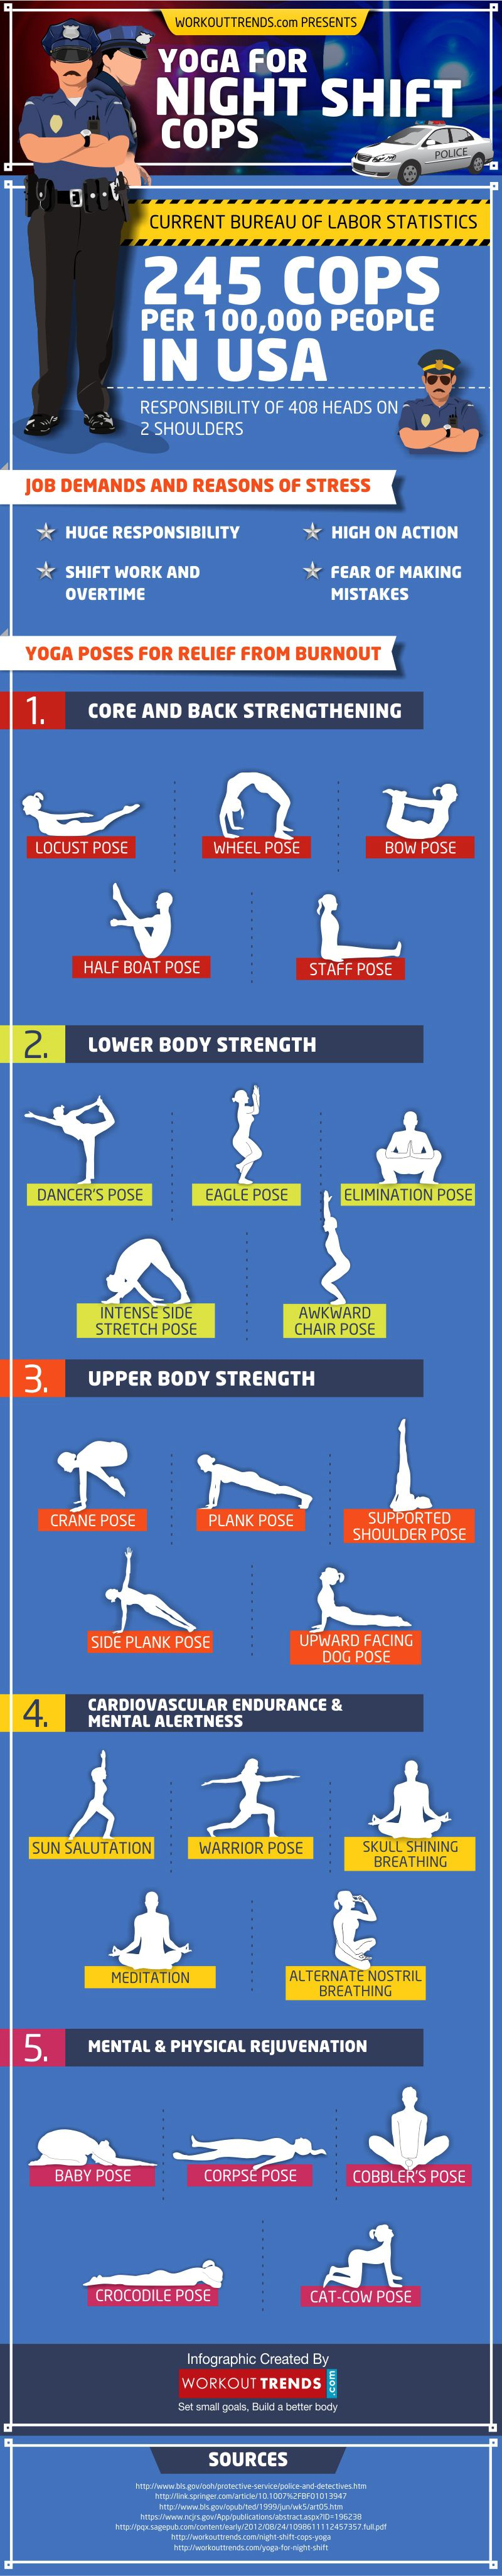 Are You A Police Officer You Should Read This Infographic Police Workout Yoga Infographic I Work Out